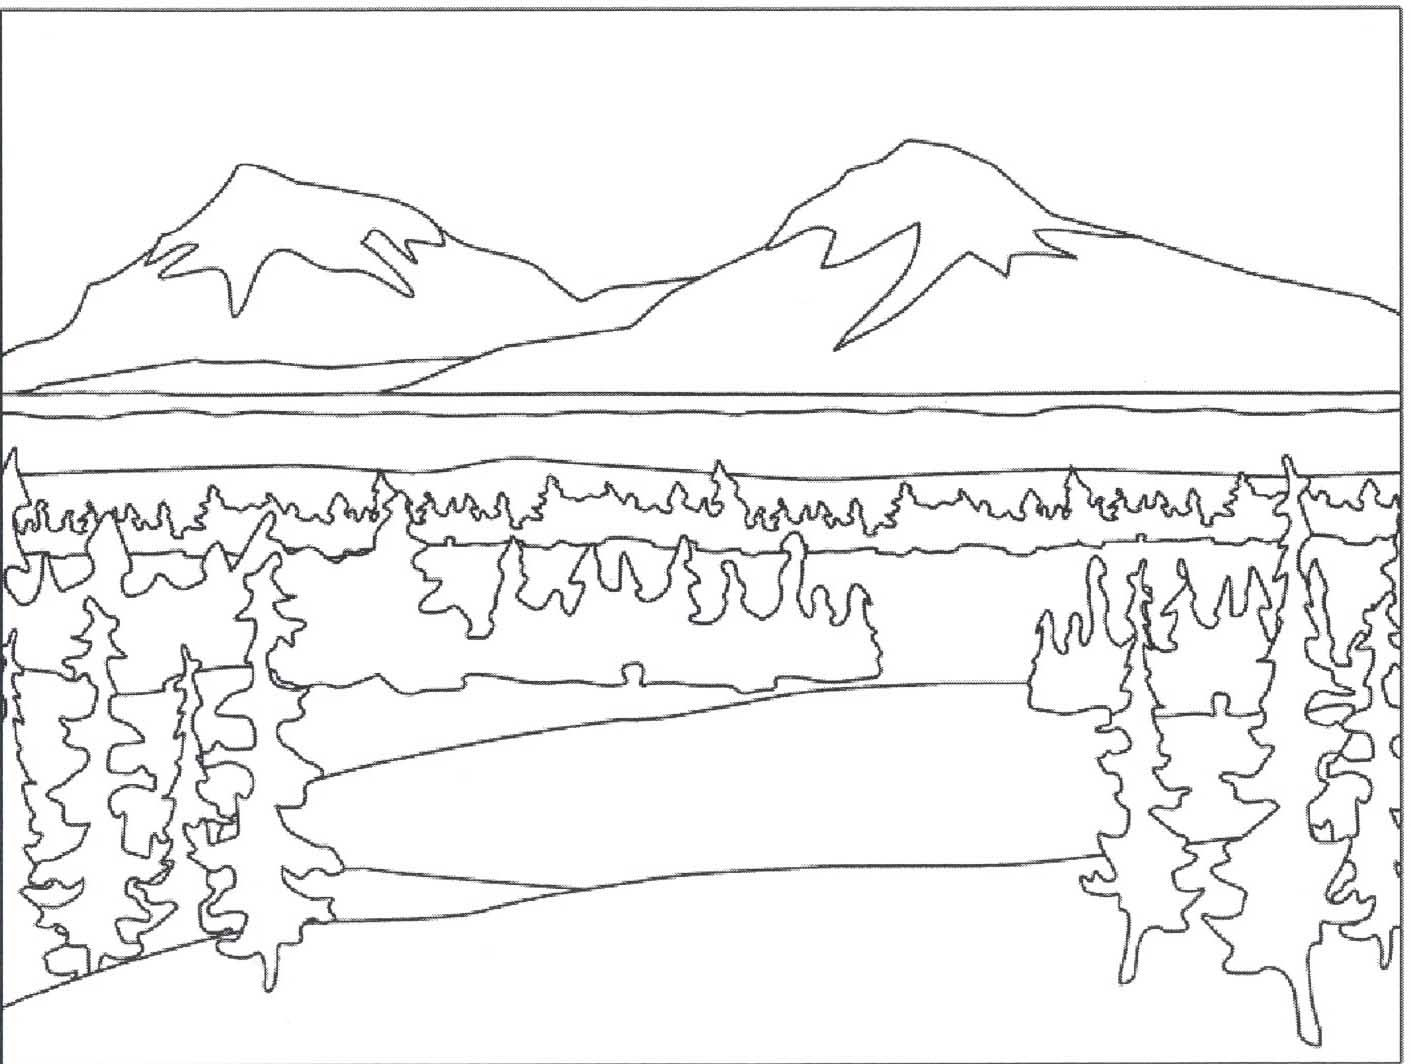 Winter Landscape Coloring Pages at GetDrawings.com | Free for ...